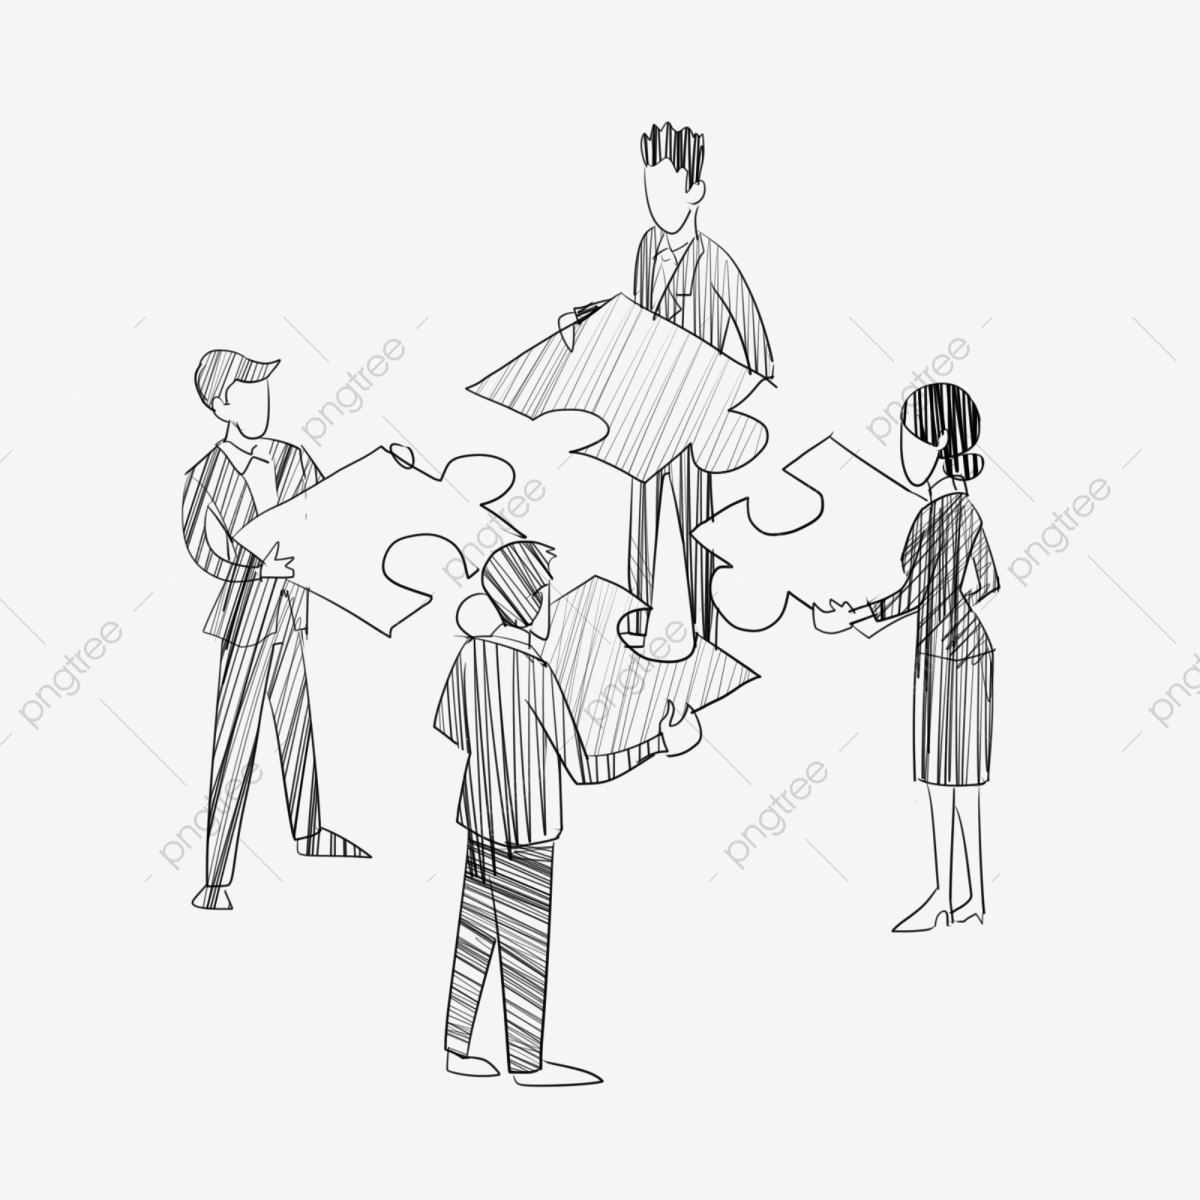 Teamwork mutual assistance complementary. Goals clipart common goal